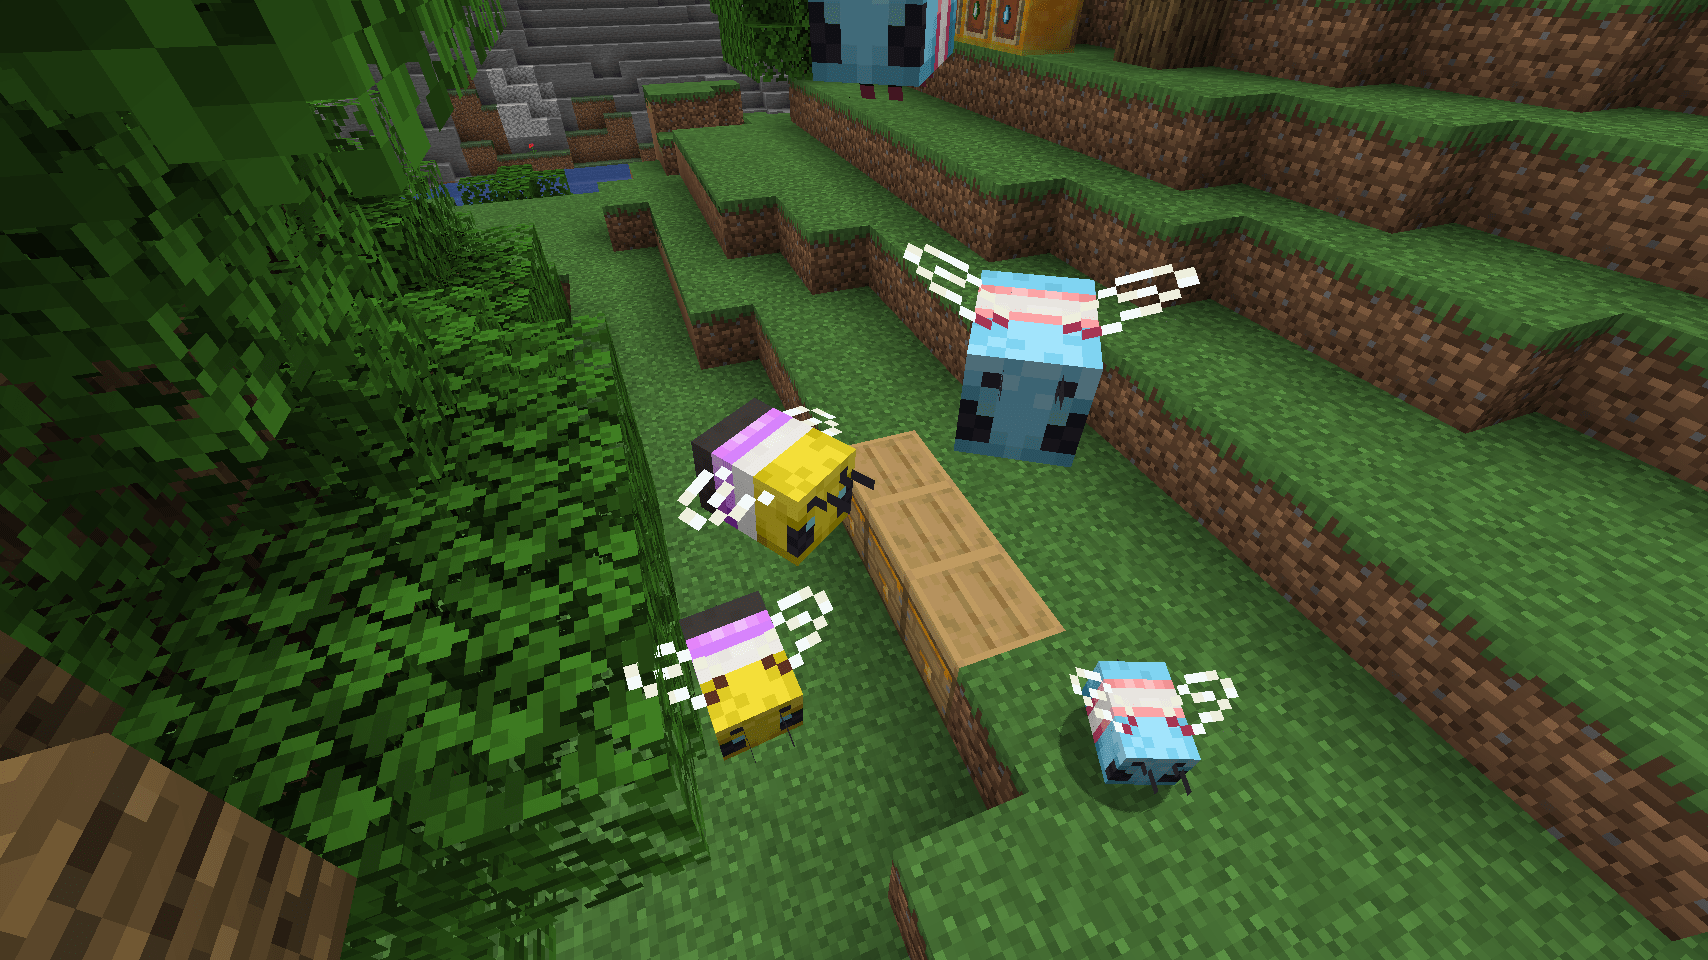 To start making bee products, you'll need to put a drone and a princess in the apiary. Bee Productive A New Bee Based Content Mod For Minecraft 1 15 Will Be Coming Soon Includes Customizable Bee Traits And Resource Production Using Vanilla Bees Here S A Teaser Of Some Of The Cosmetic